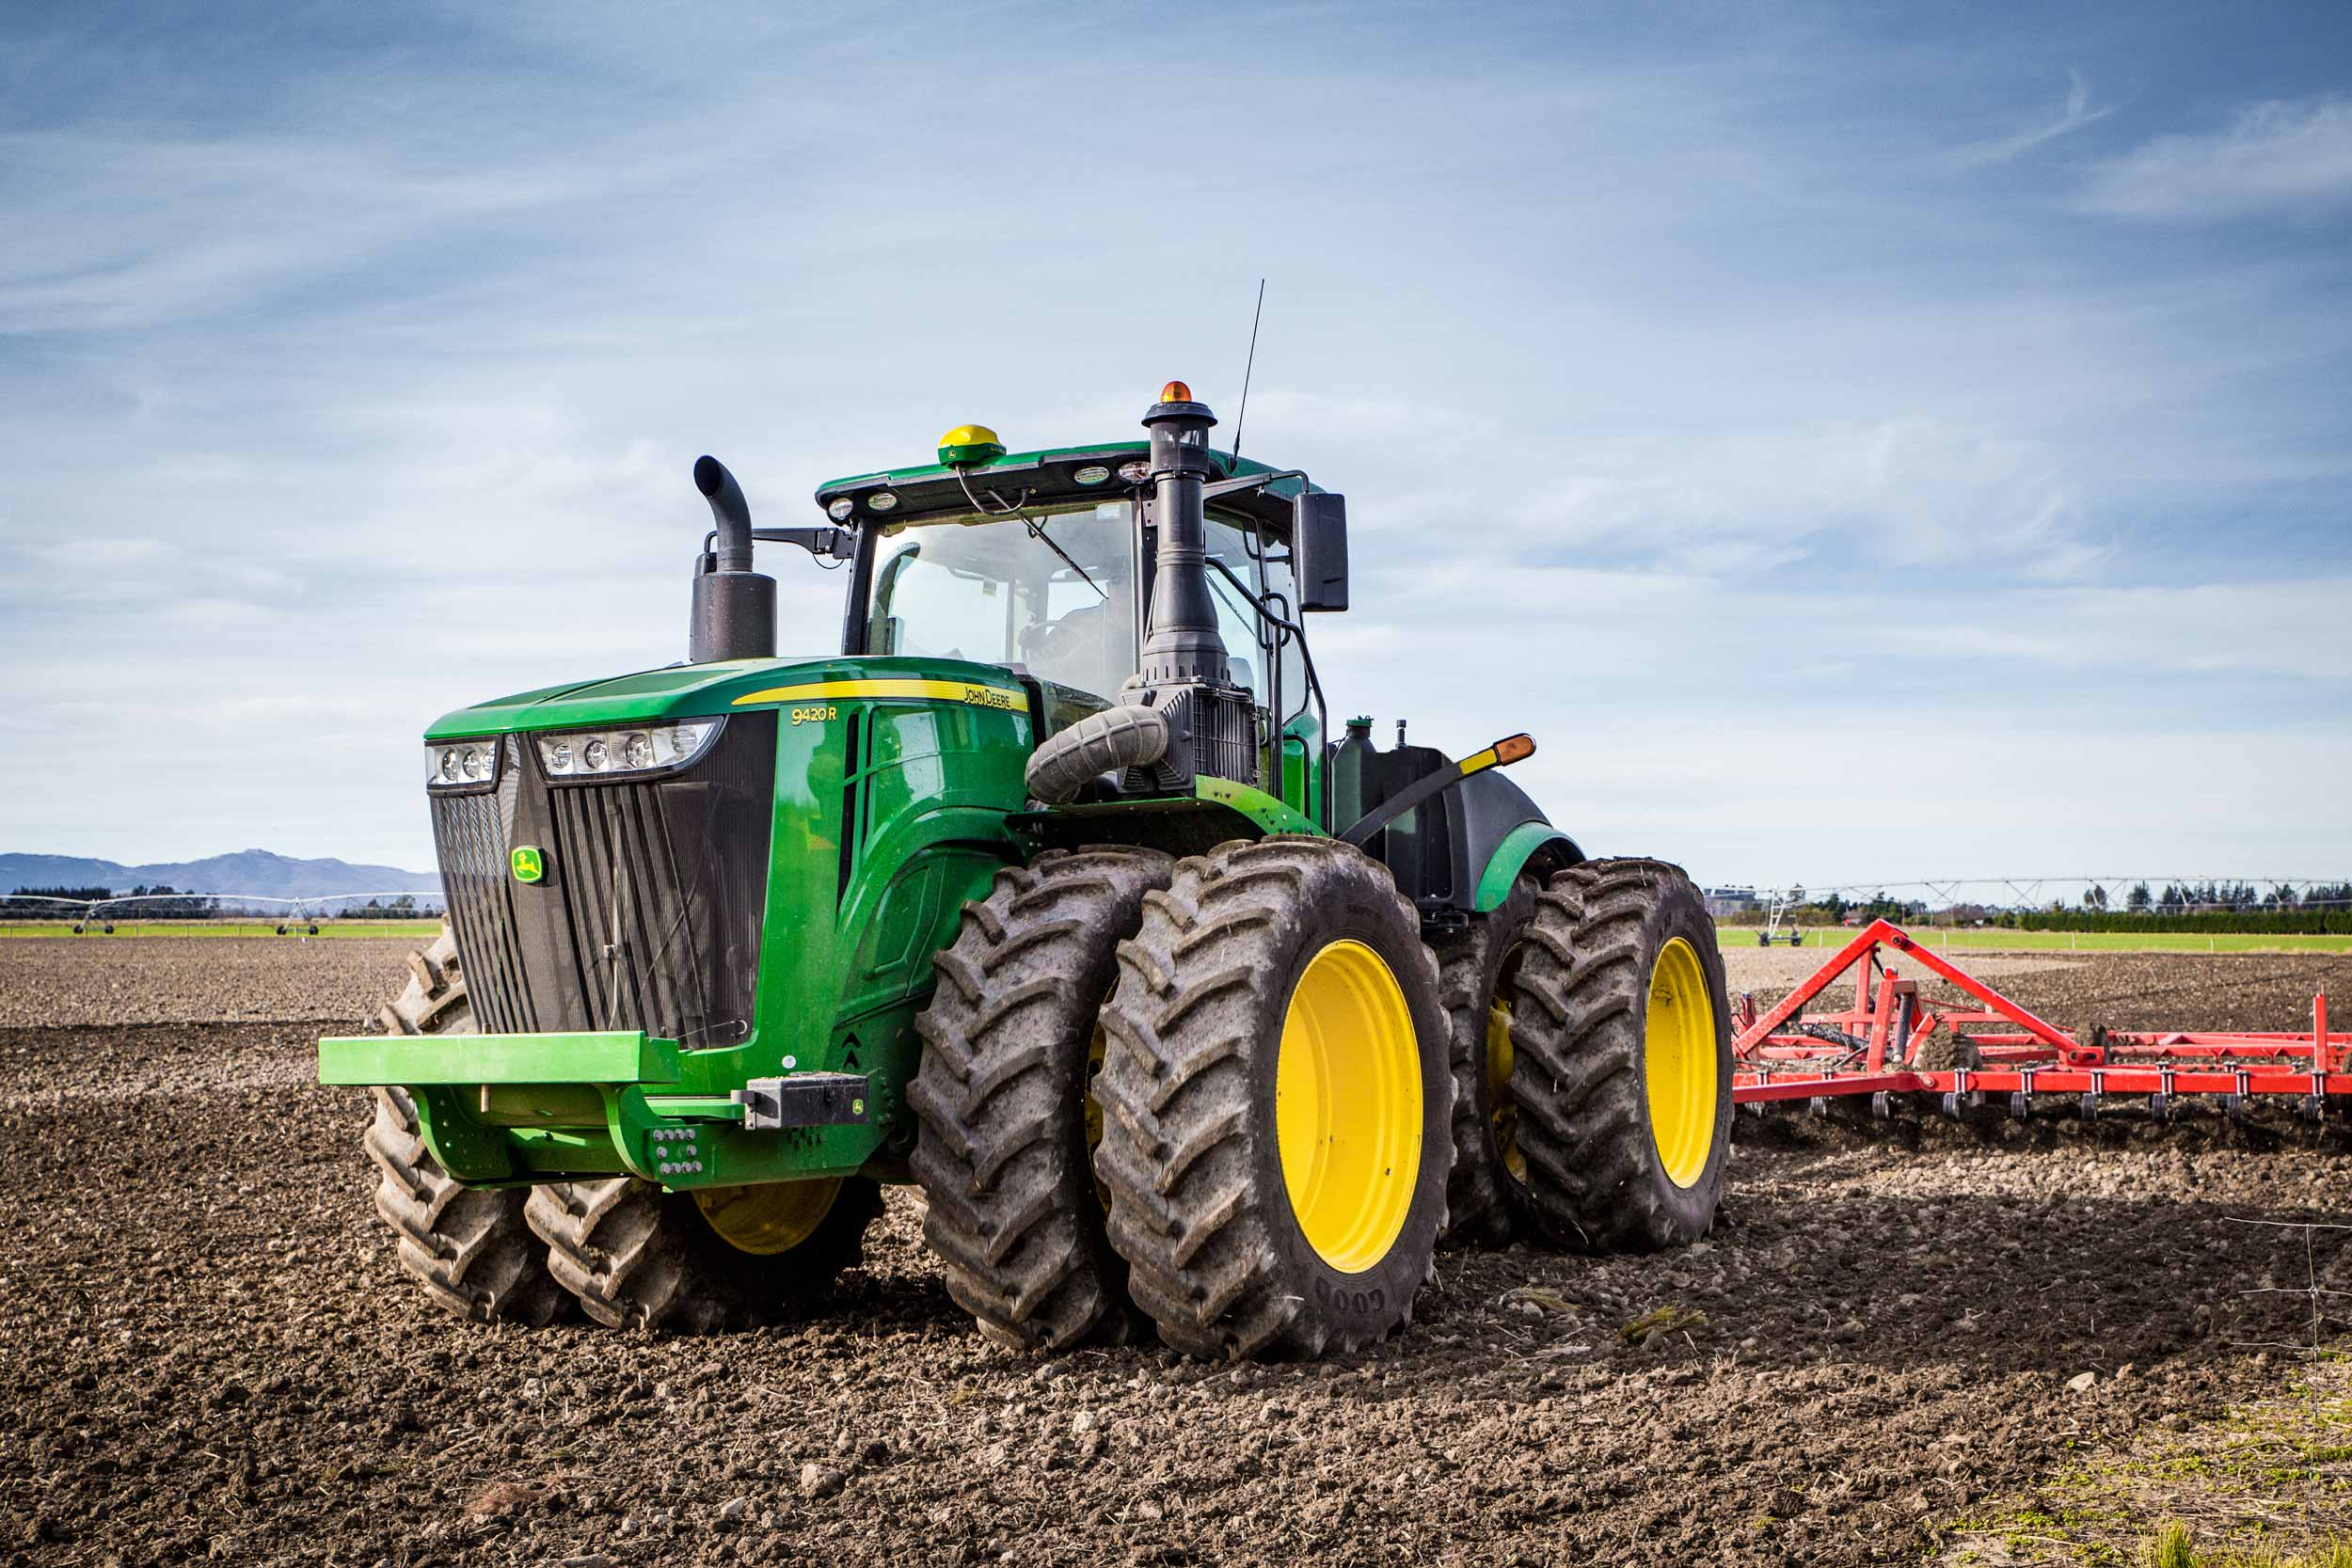 4WD tractor with duals working in the field